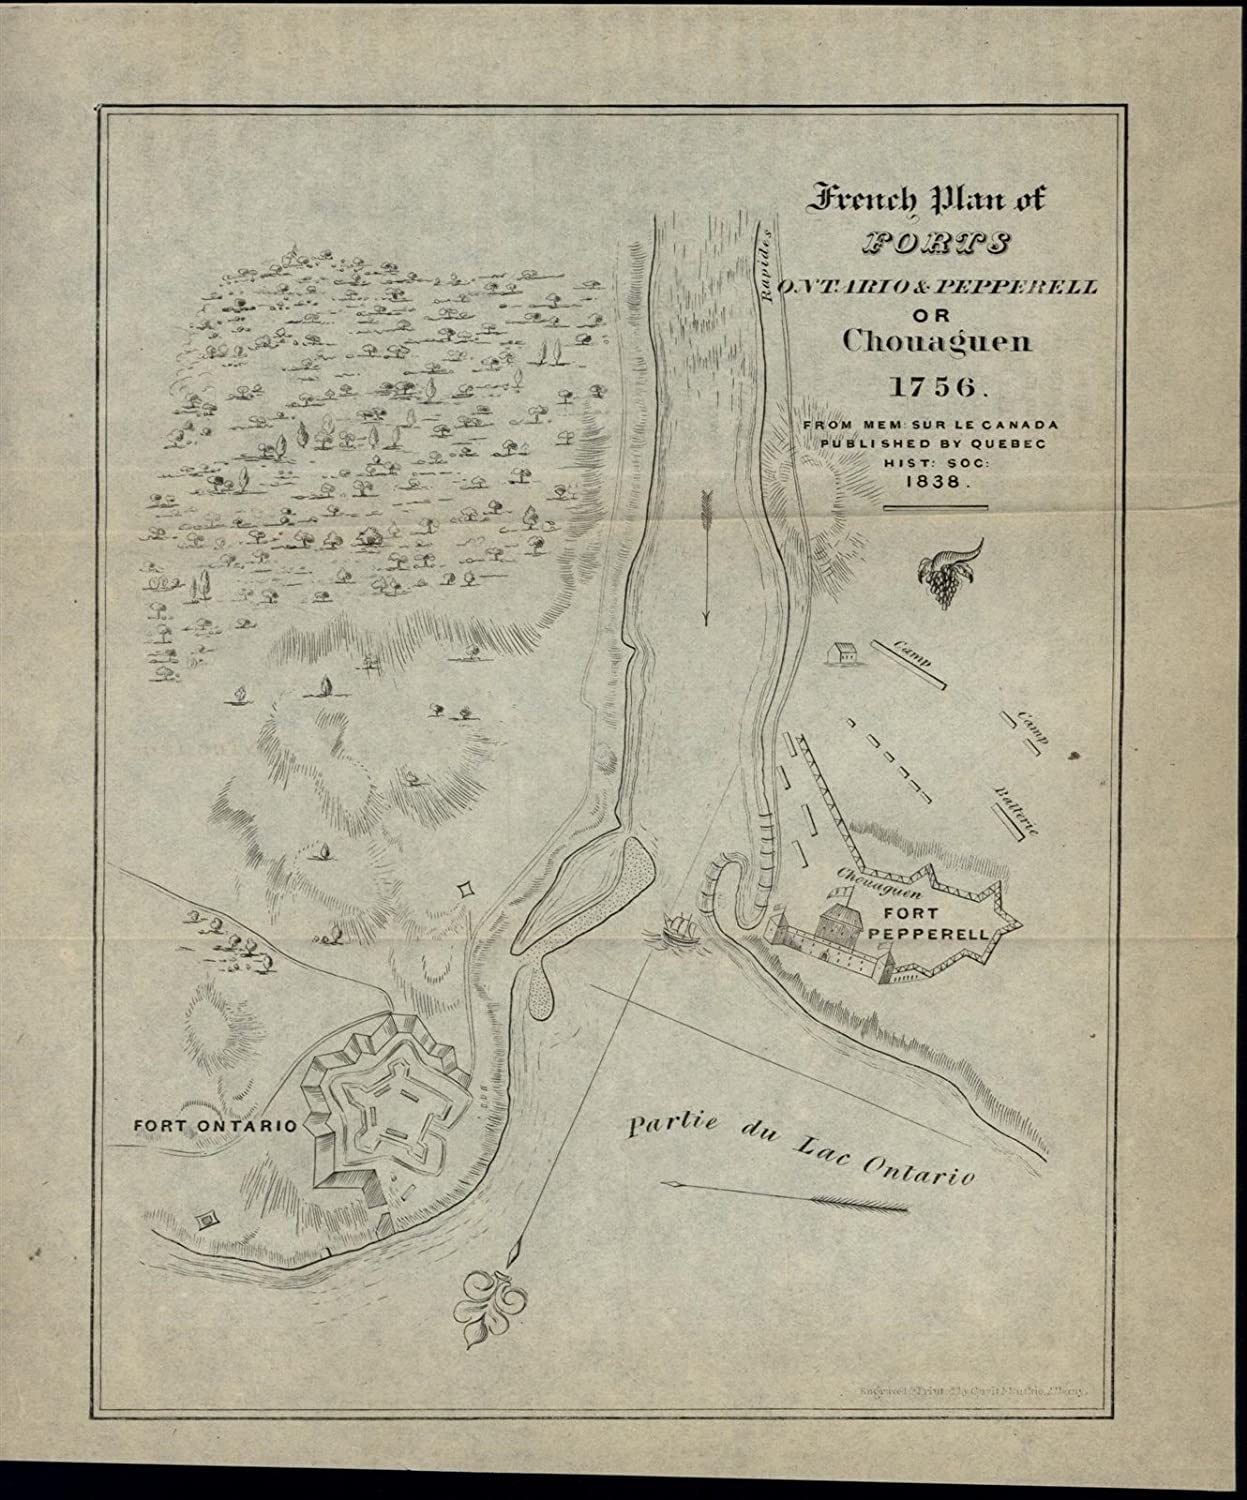 Amazon.com: French Plan Forts Ontario & Pepperell New York Canada ...